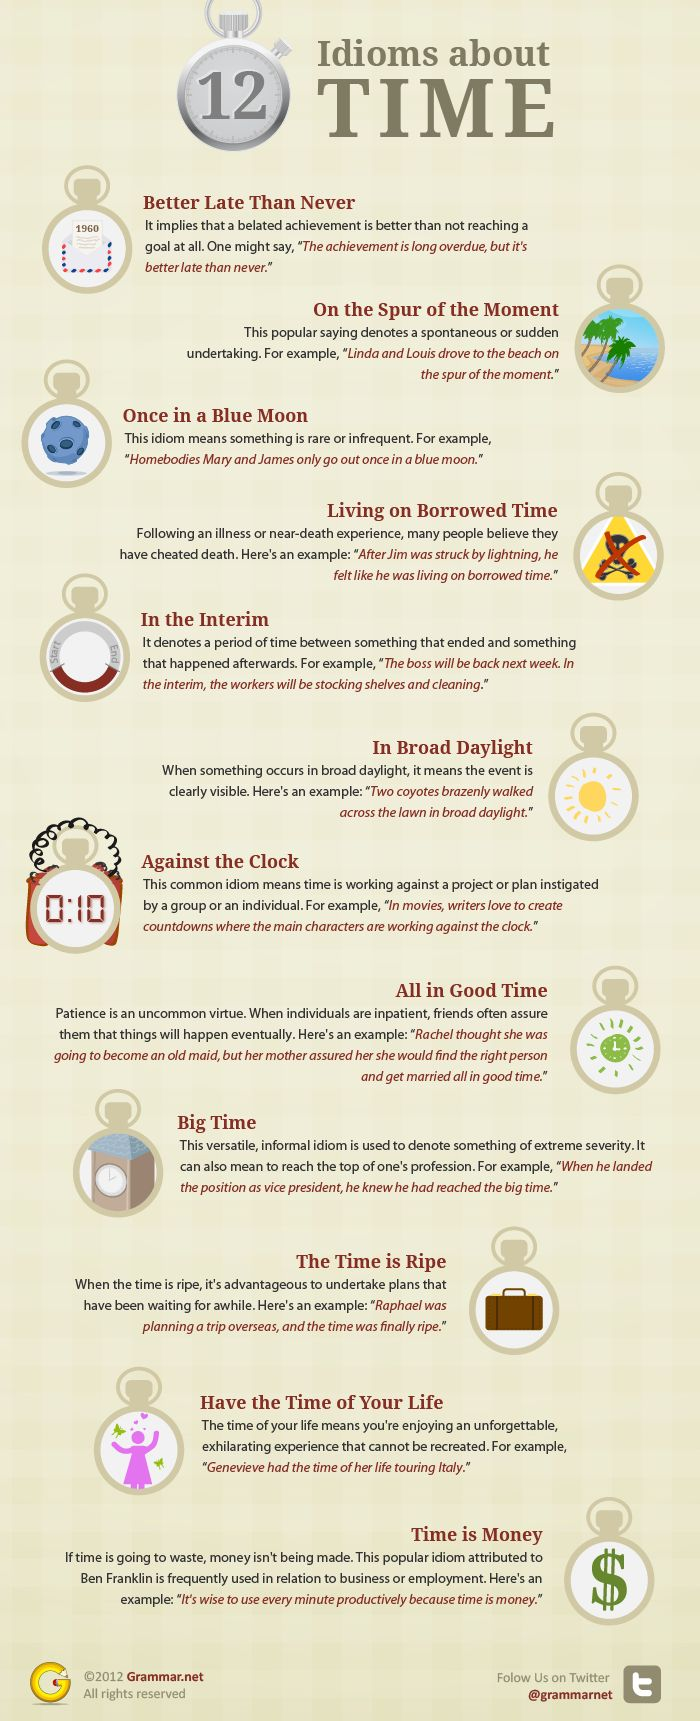 12 idioms about time. Idioms do not easily translate into other languages/cultures and knowing these can help you process them quickly, especially when those idioms are related to numerical phrases like time (compounding the issue).